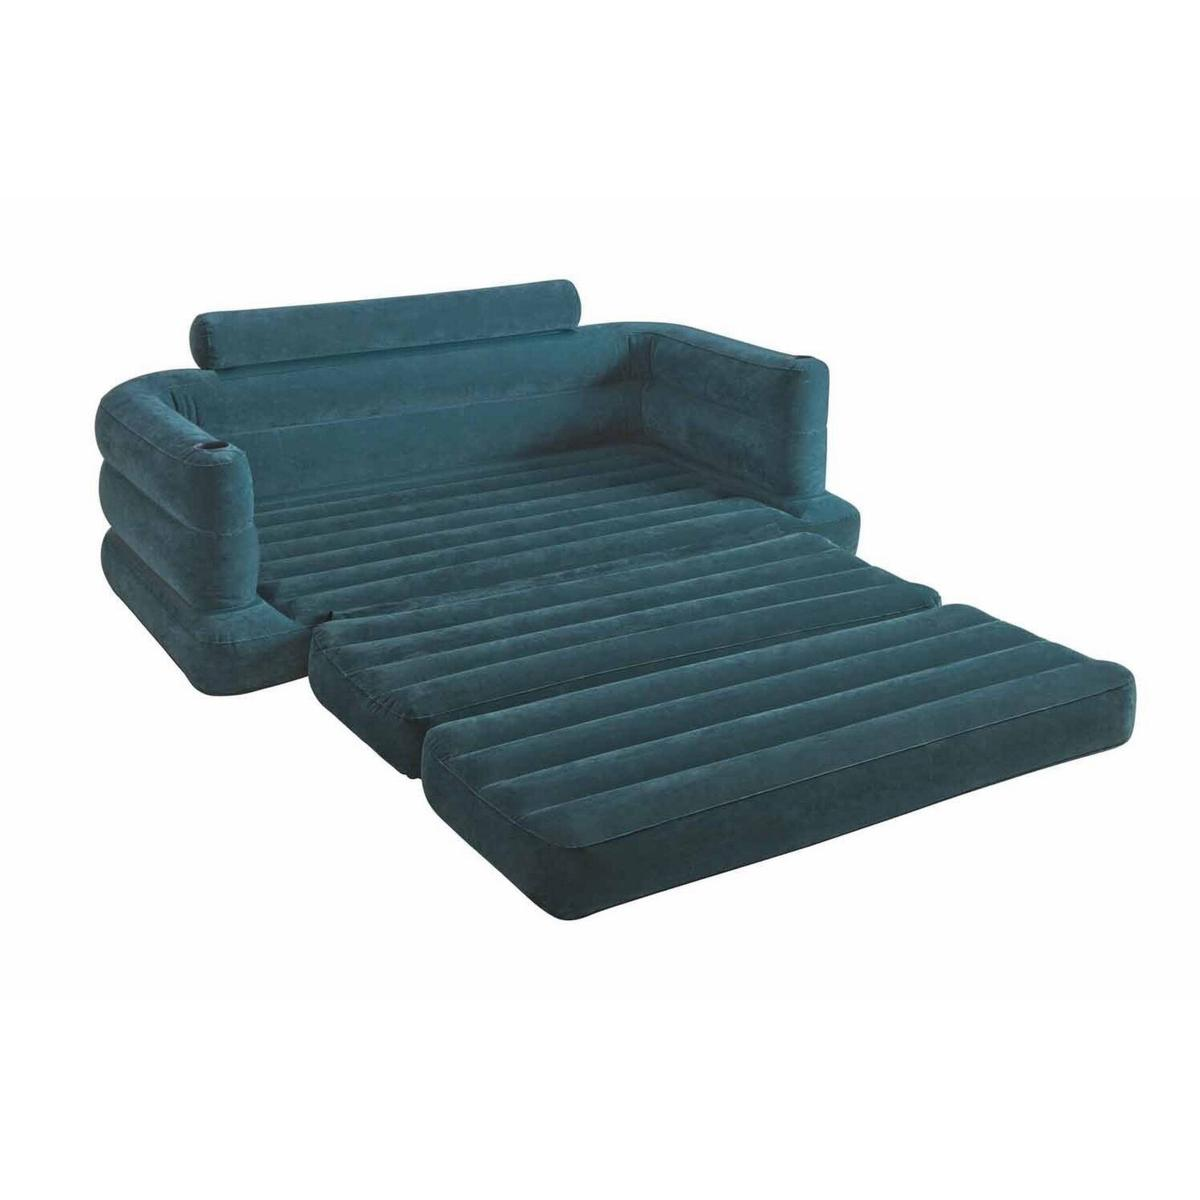 Surprising Intel Double Pull Out Sofa Air Bed Blue Machost Co Dining Chair Design Ideas Machostcouk